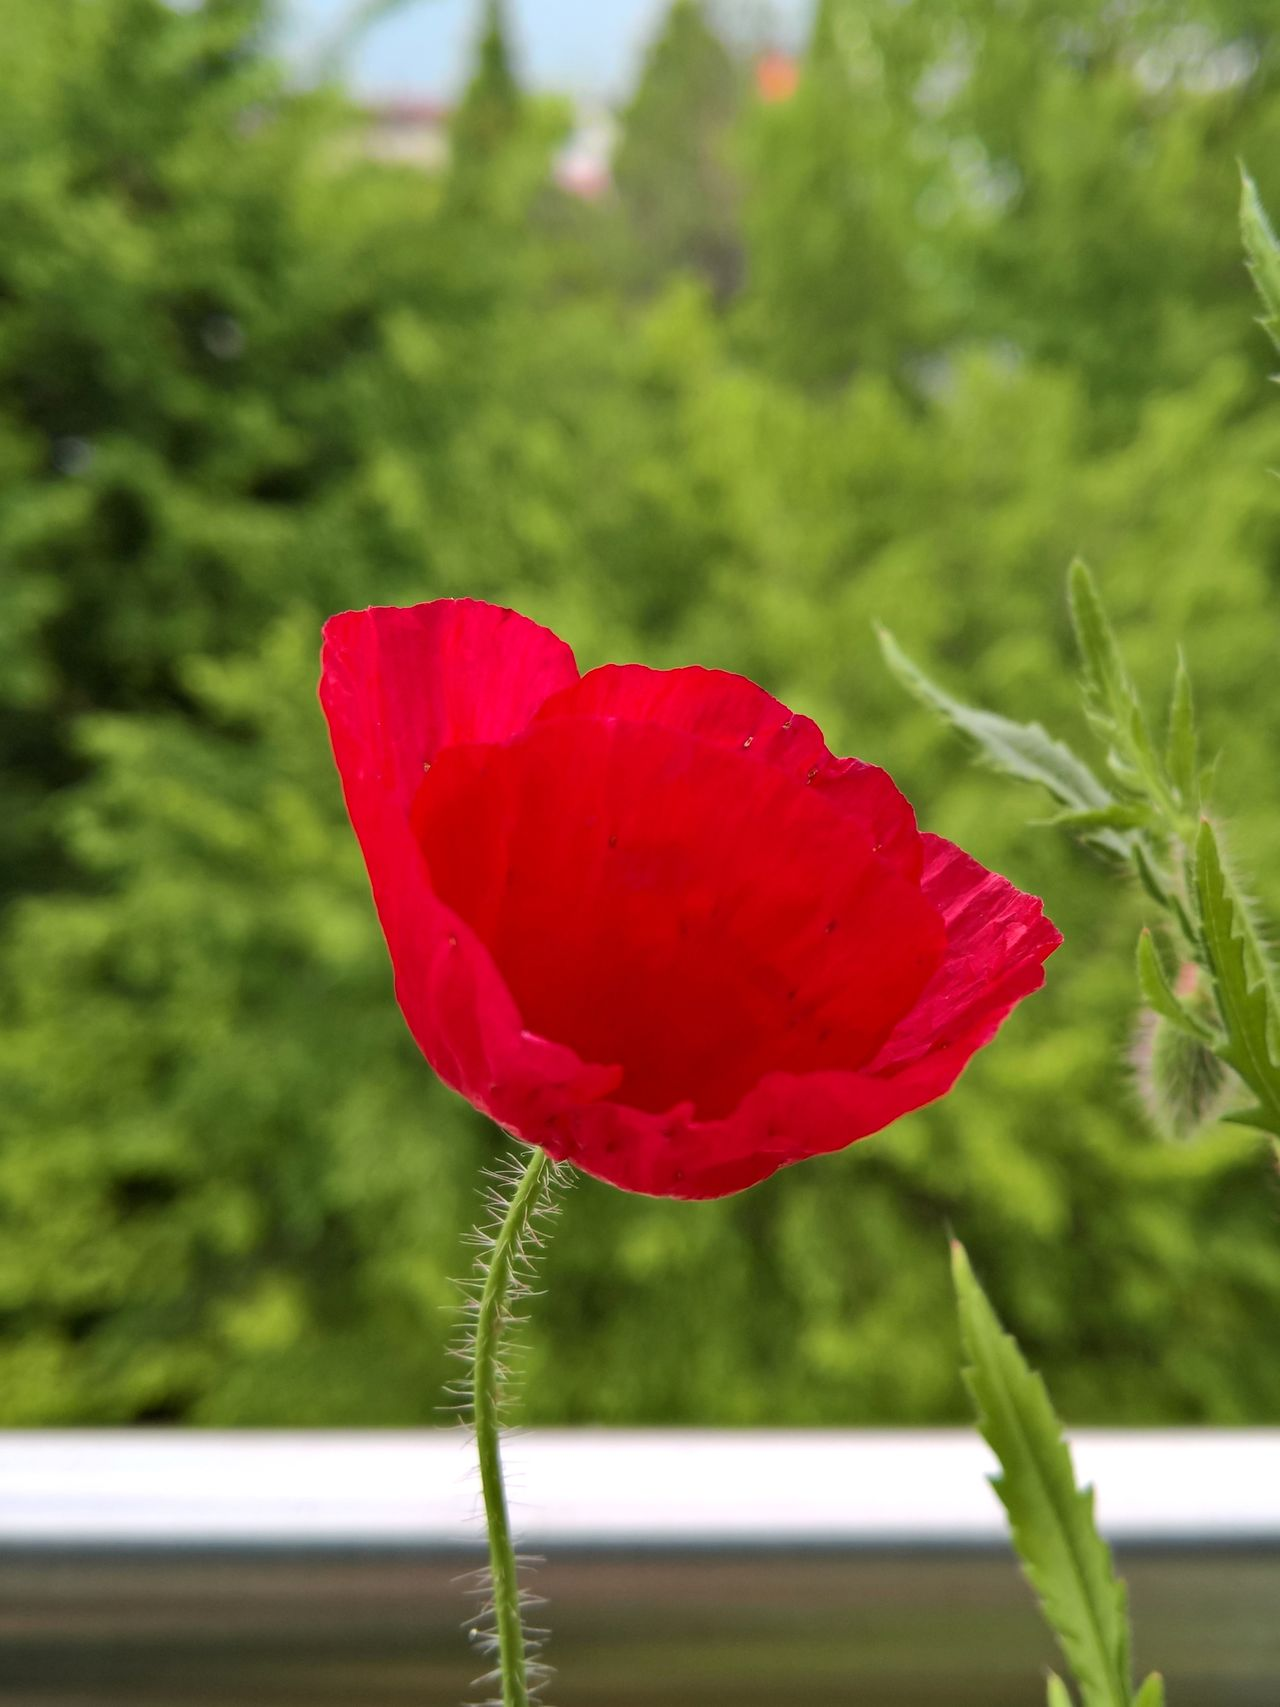 Balcony Balcony View Beauty In Nature Blooming Close-up Flower Flower Head Focus On Foreground Fragility Freshness Growth Nature Outdoors Petal Plant Poppy Poppy Flowers Spring Flowers Springtime Summer Summertime